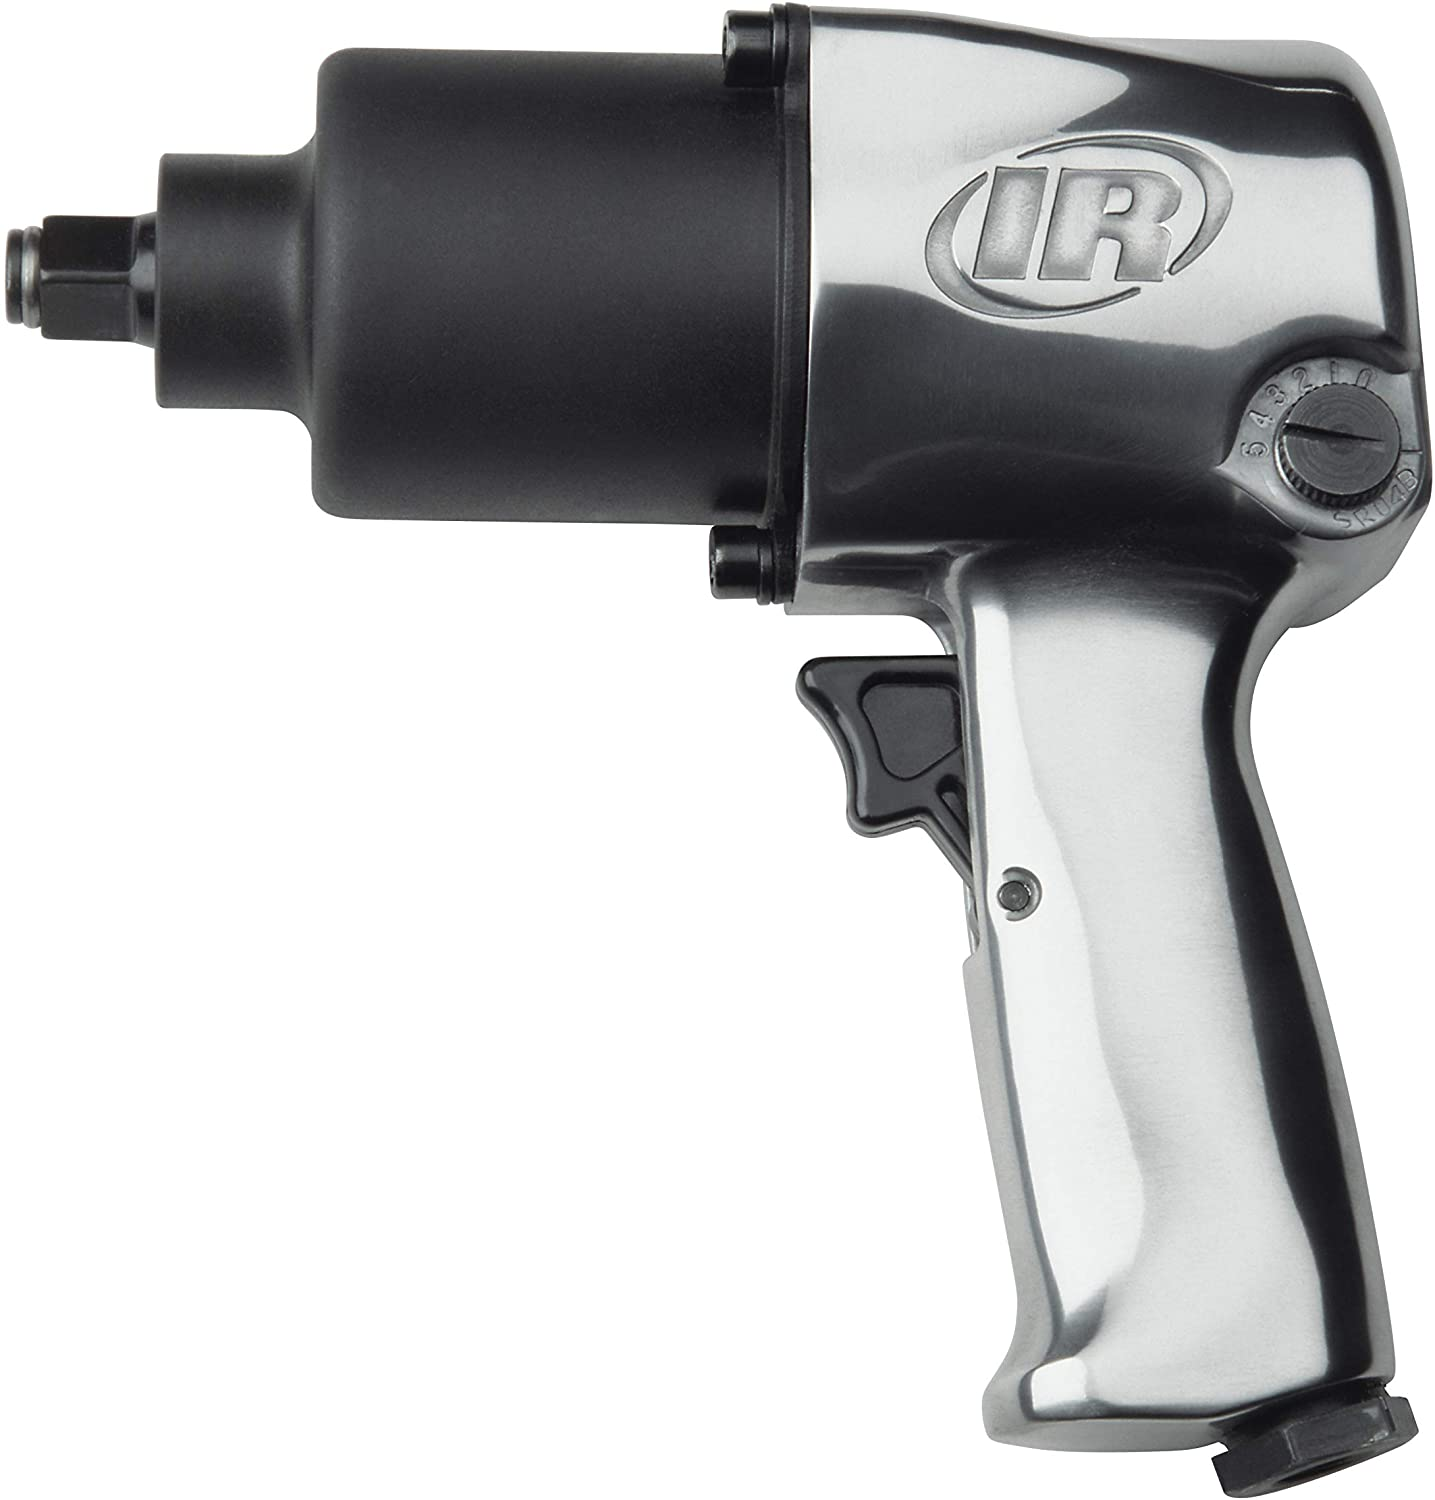 Ingersoll Rand 231C ½-inch Heavy Duty Air Impact Wrench